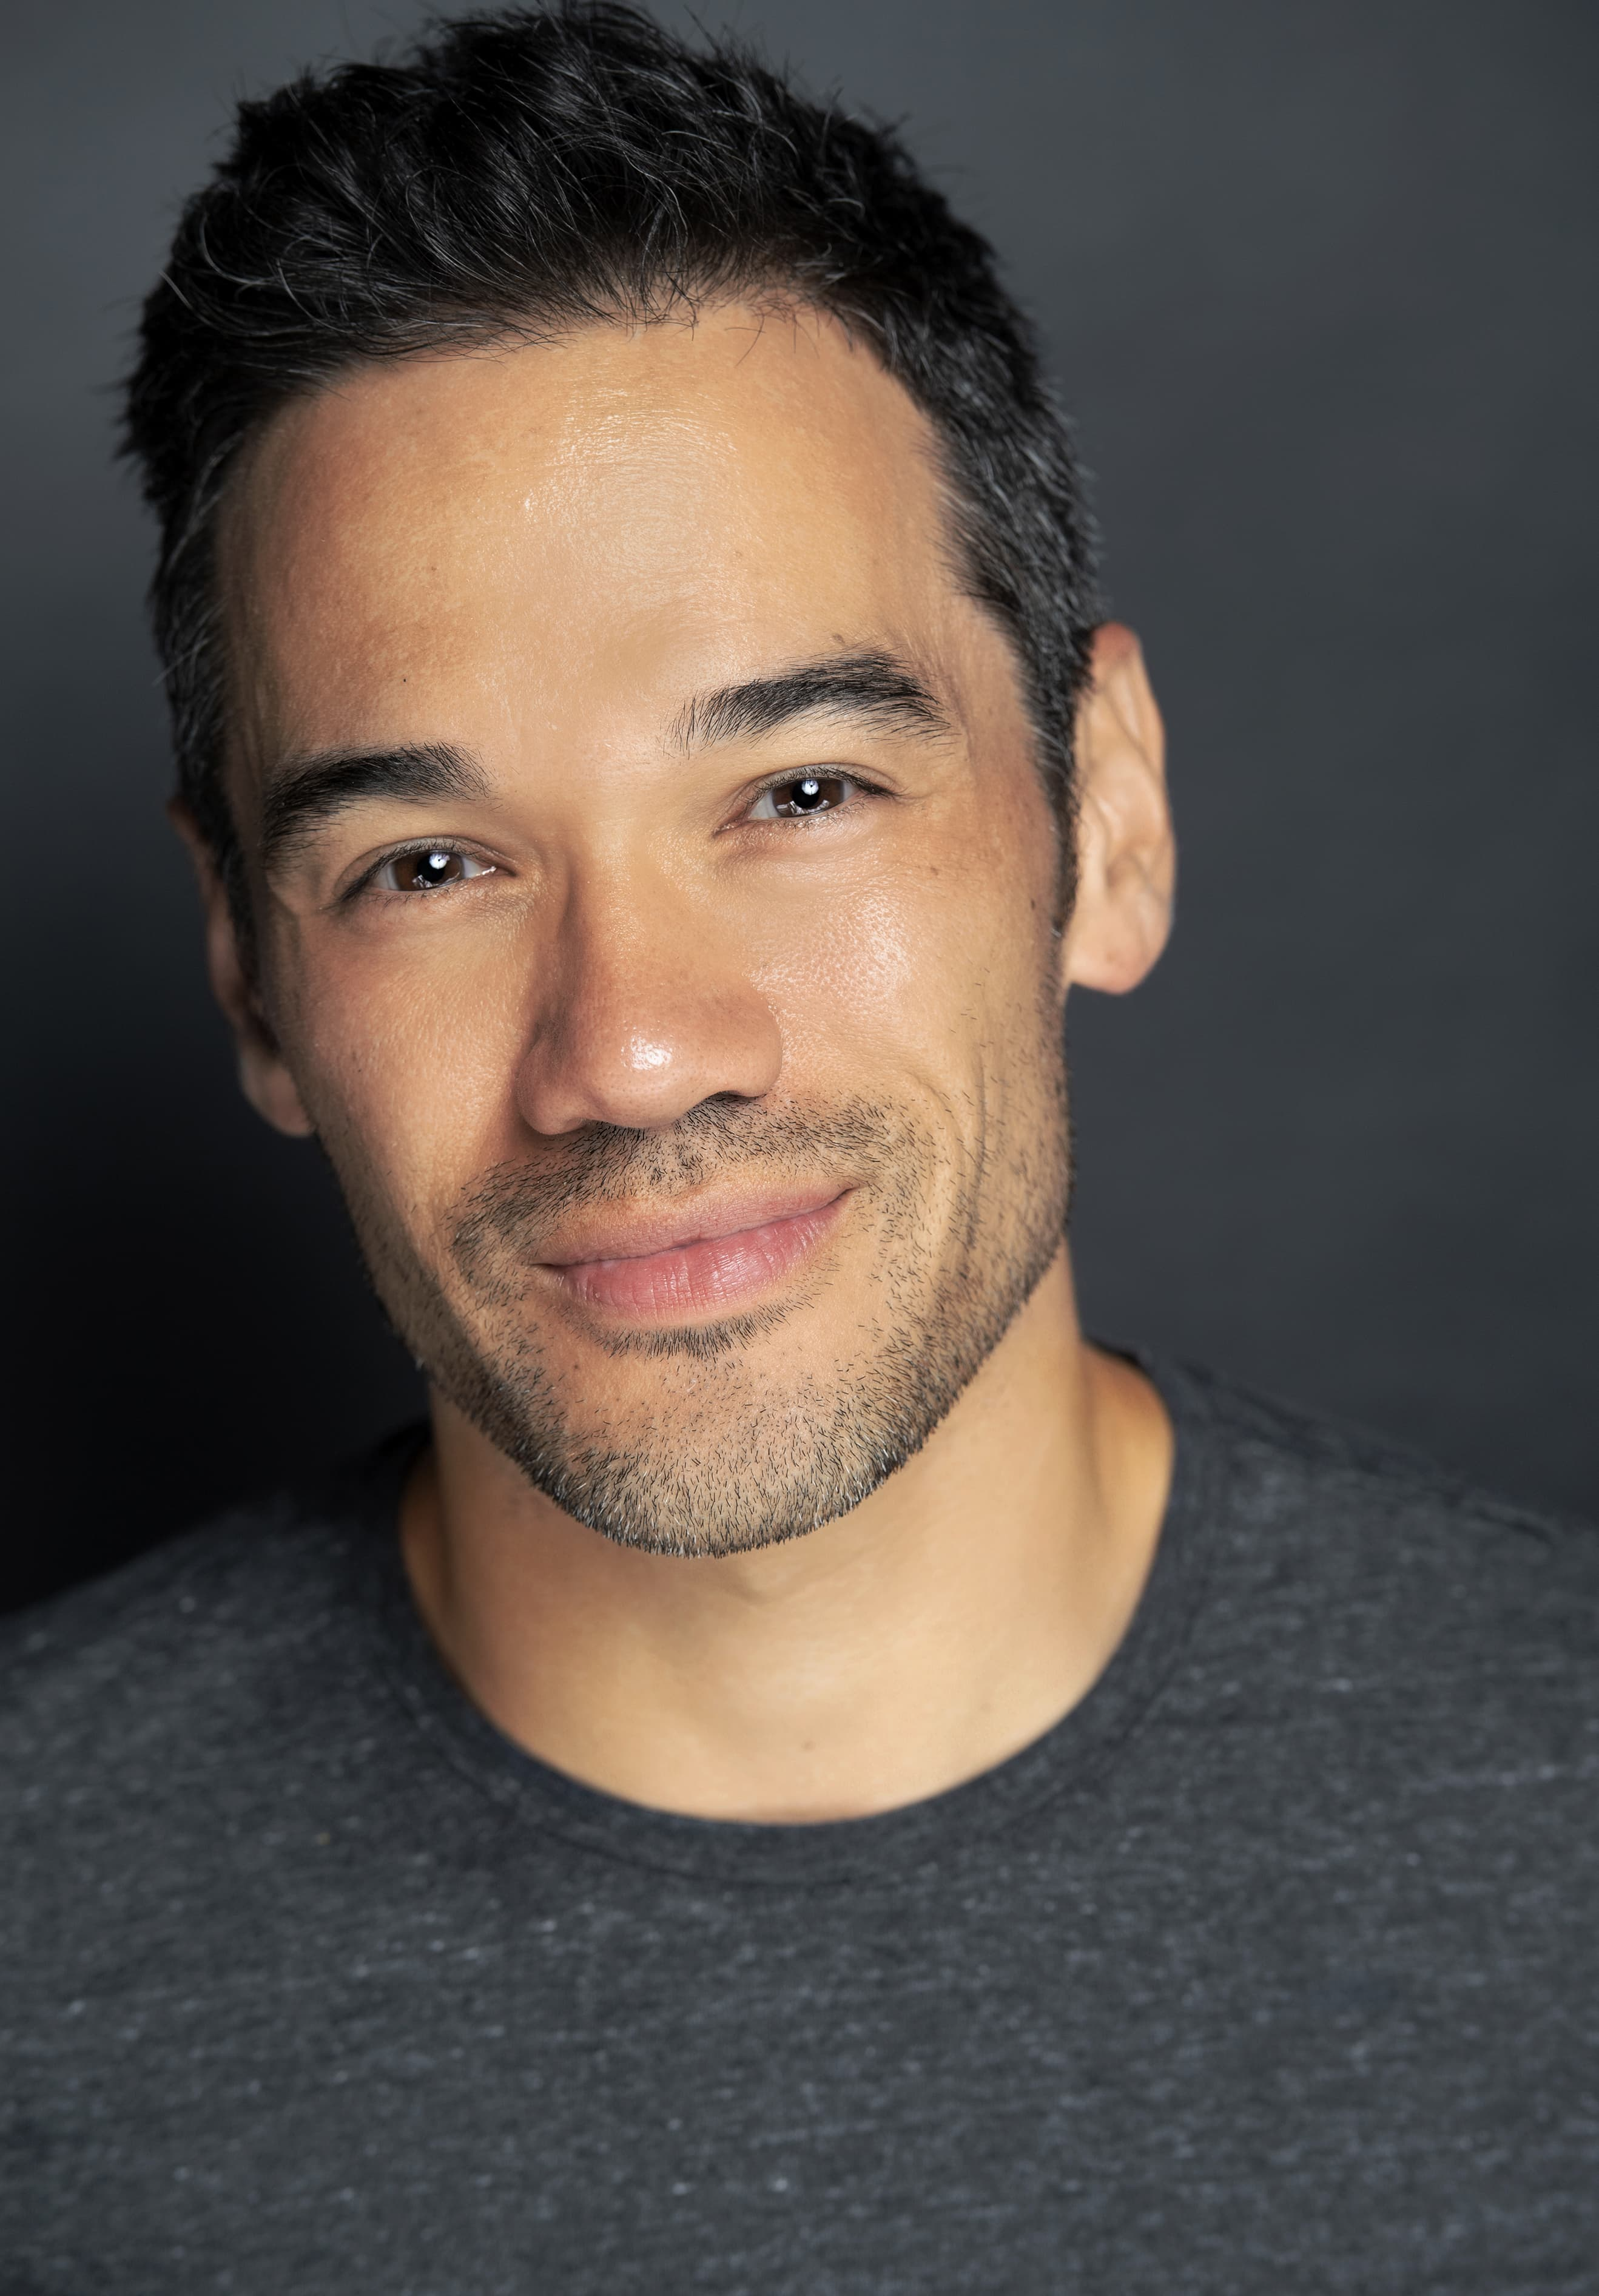 Veteran Broadway dancer and School of Theatre and Dance Professor Andrew Cao